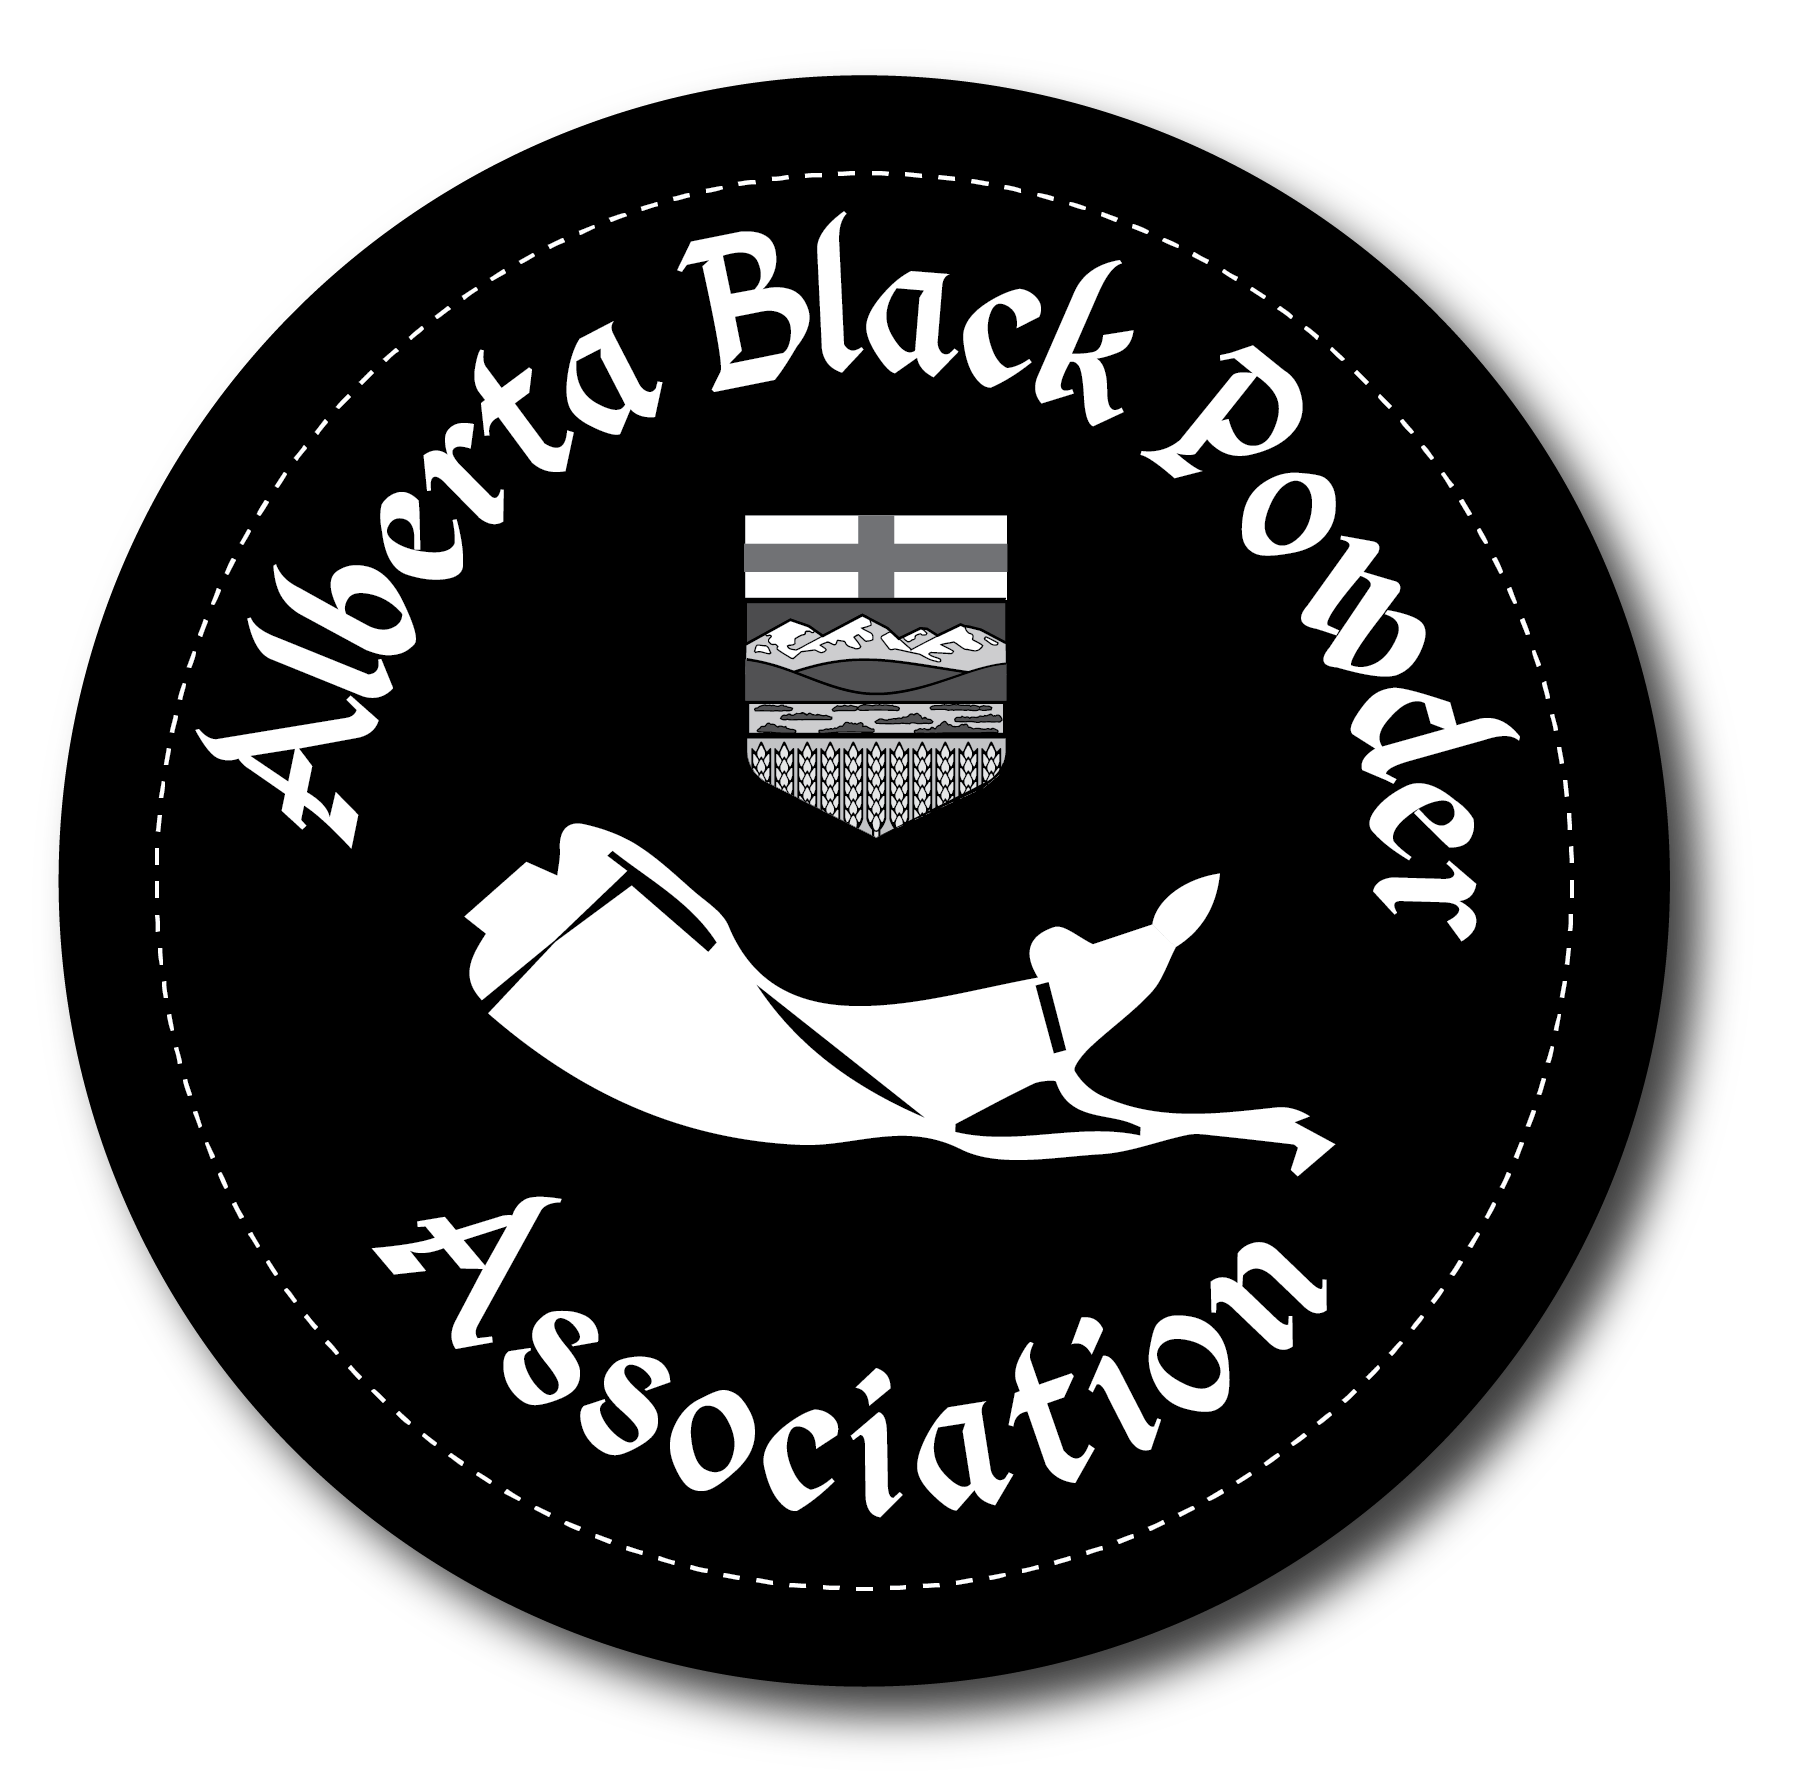 Alberta Black Powder Association